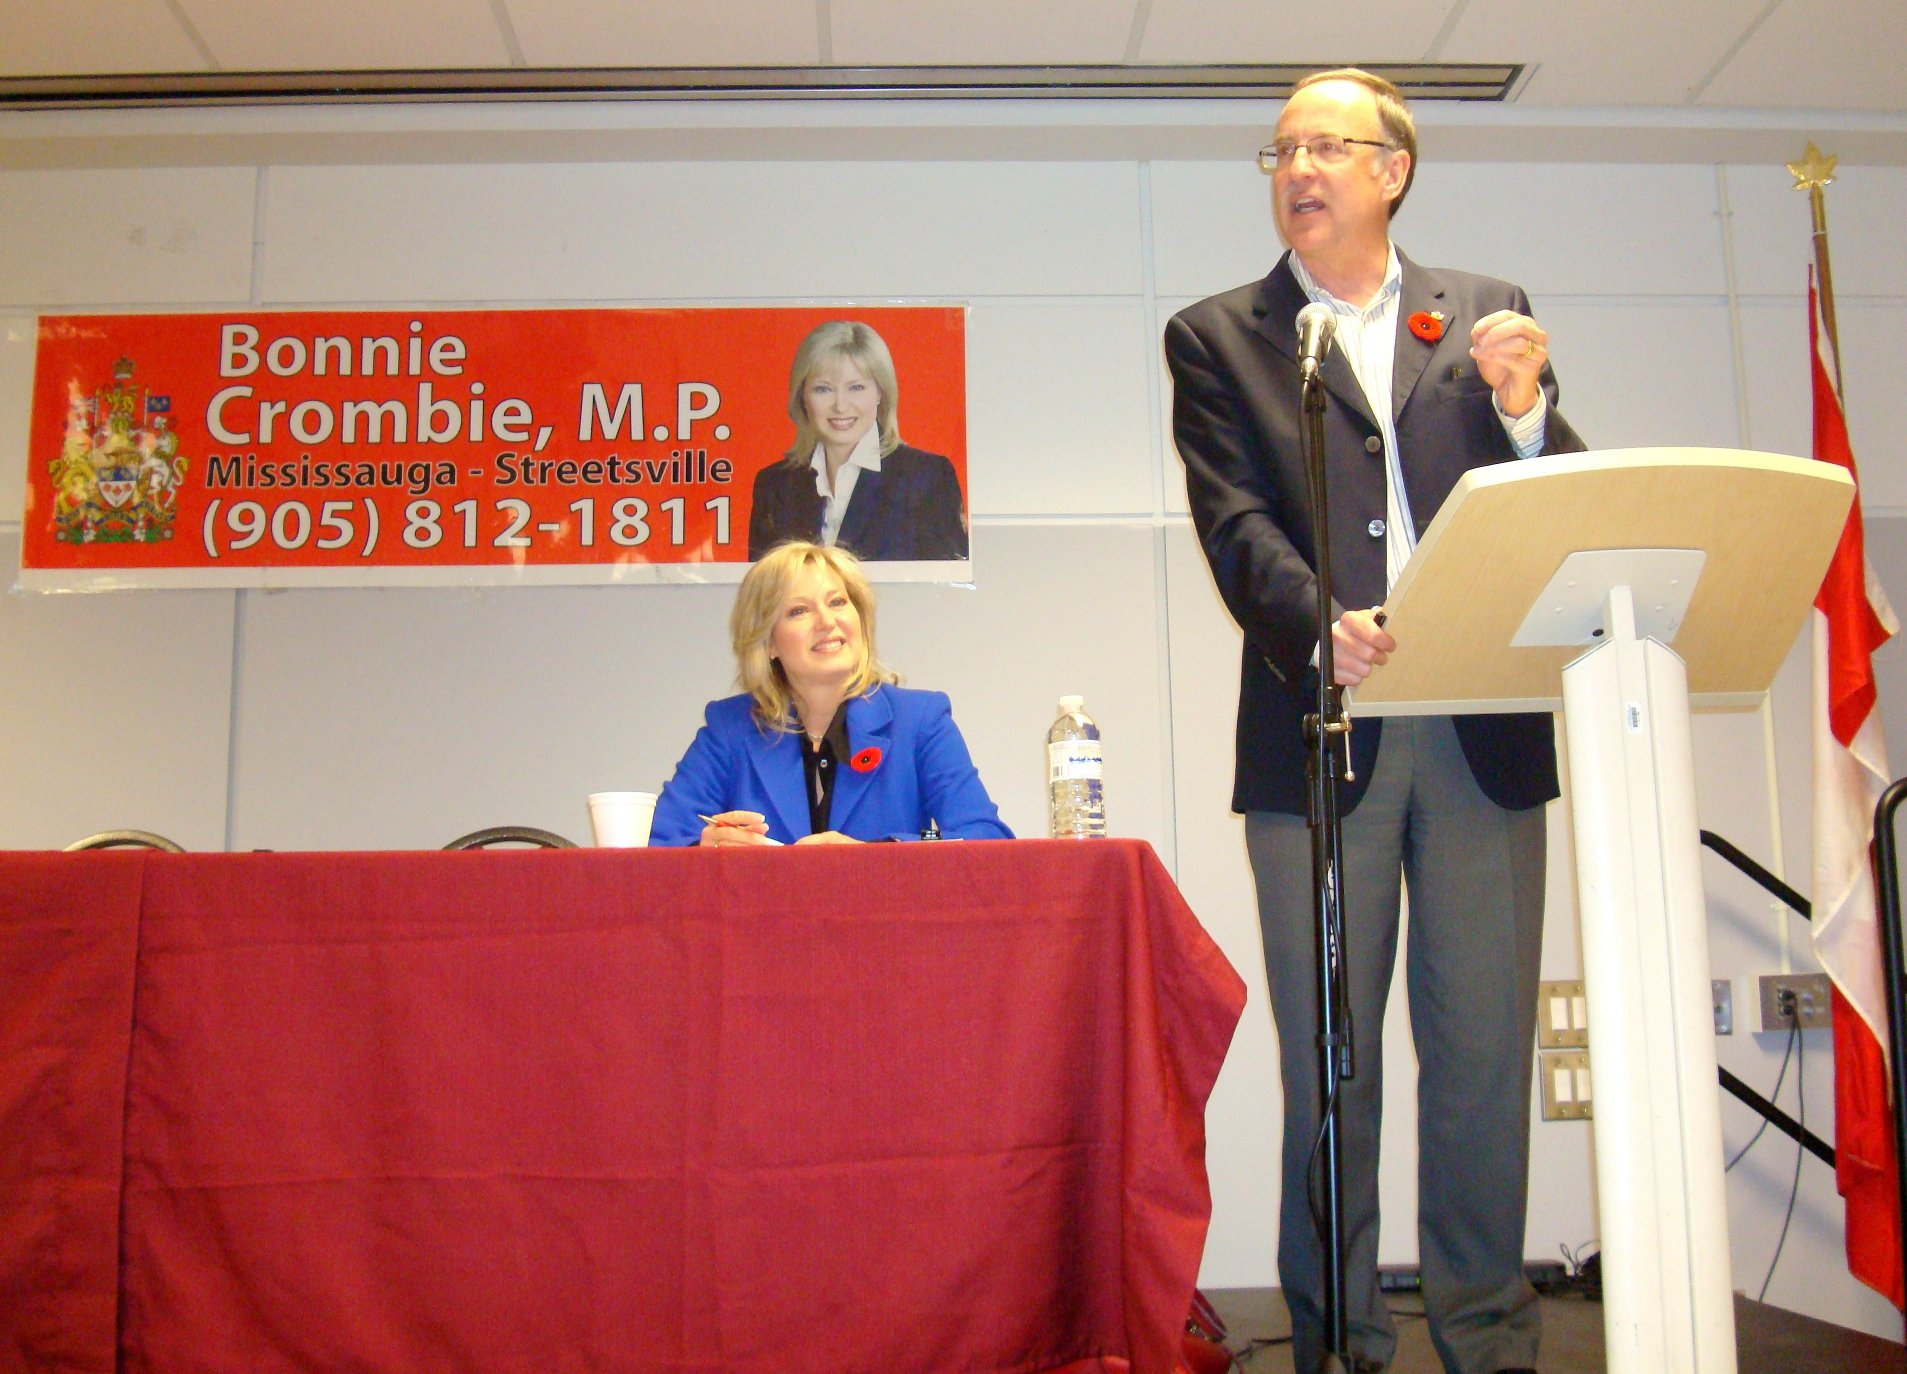 Bonnie Crombie, M.P and Rob Oliphant, M.P.